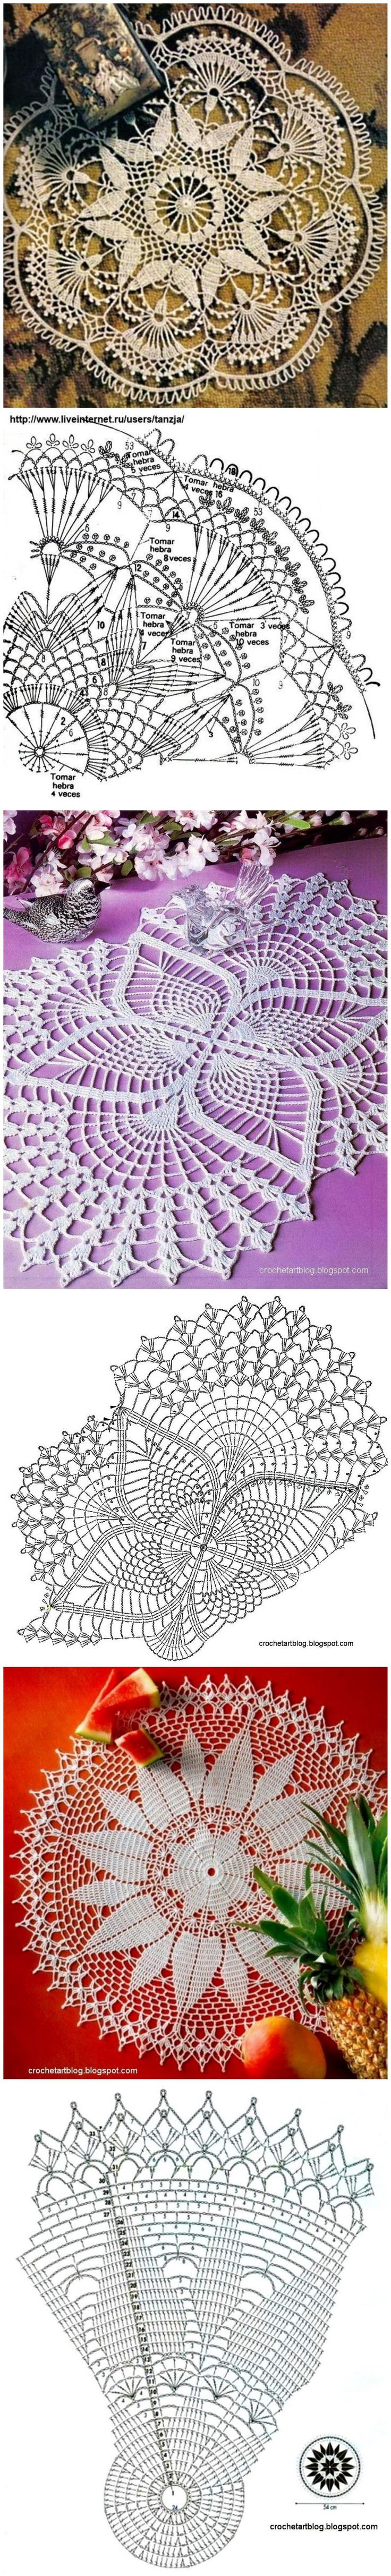 Lots of free crochet doily patterns here.